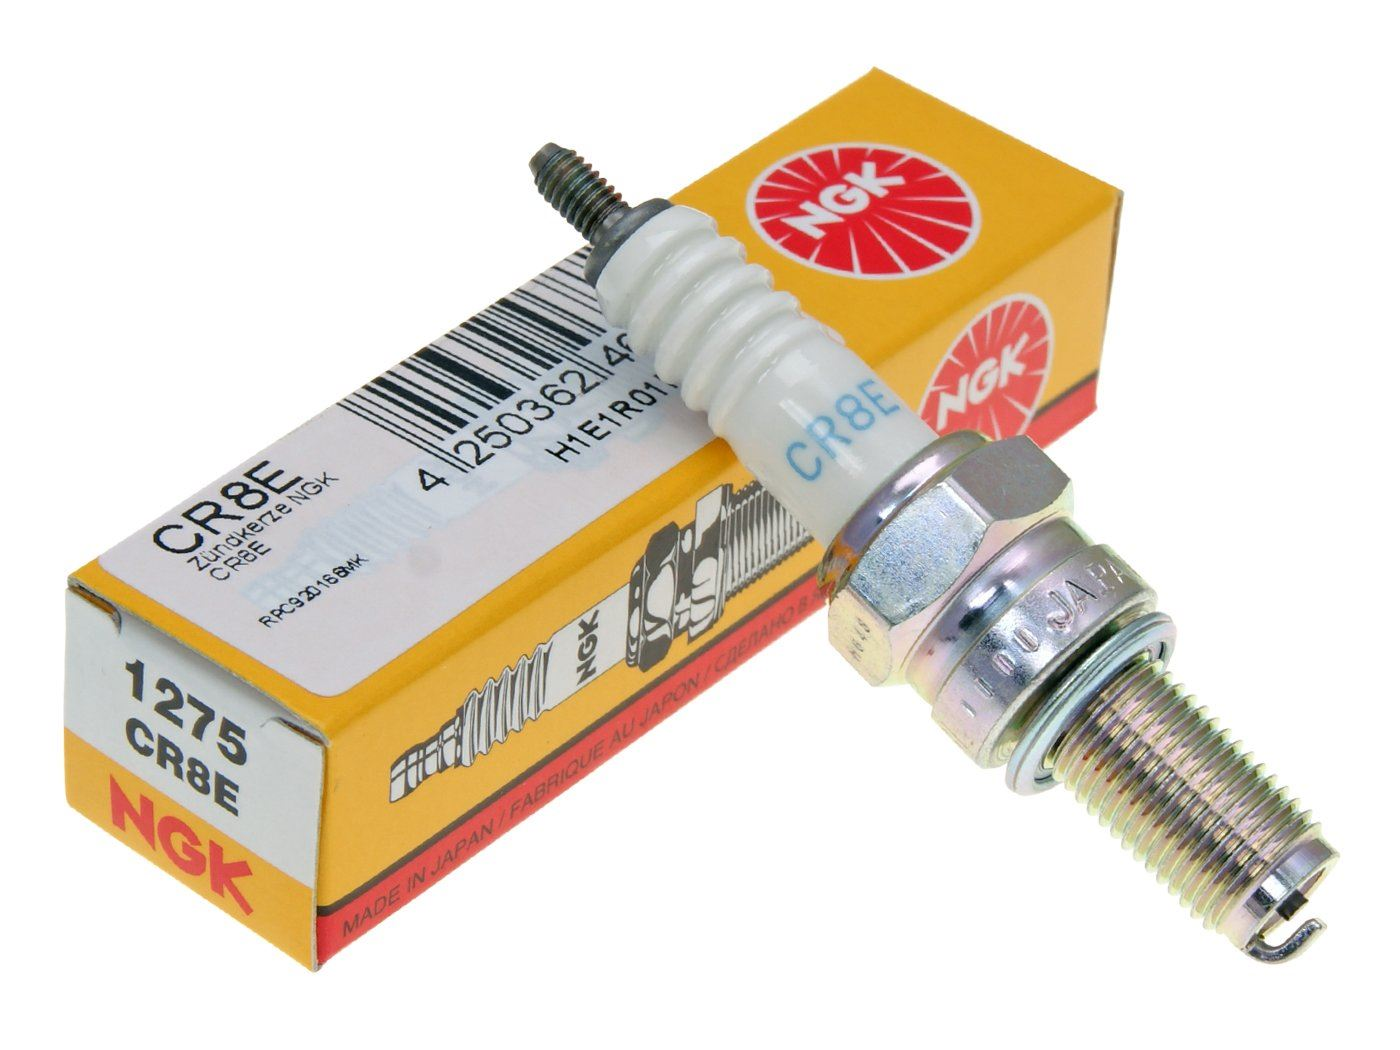 Special Type Spark Plug For 2016 Indian Chieftain~NGK Spark Plugs 4339